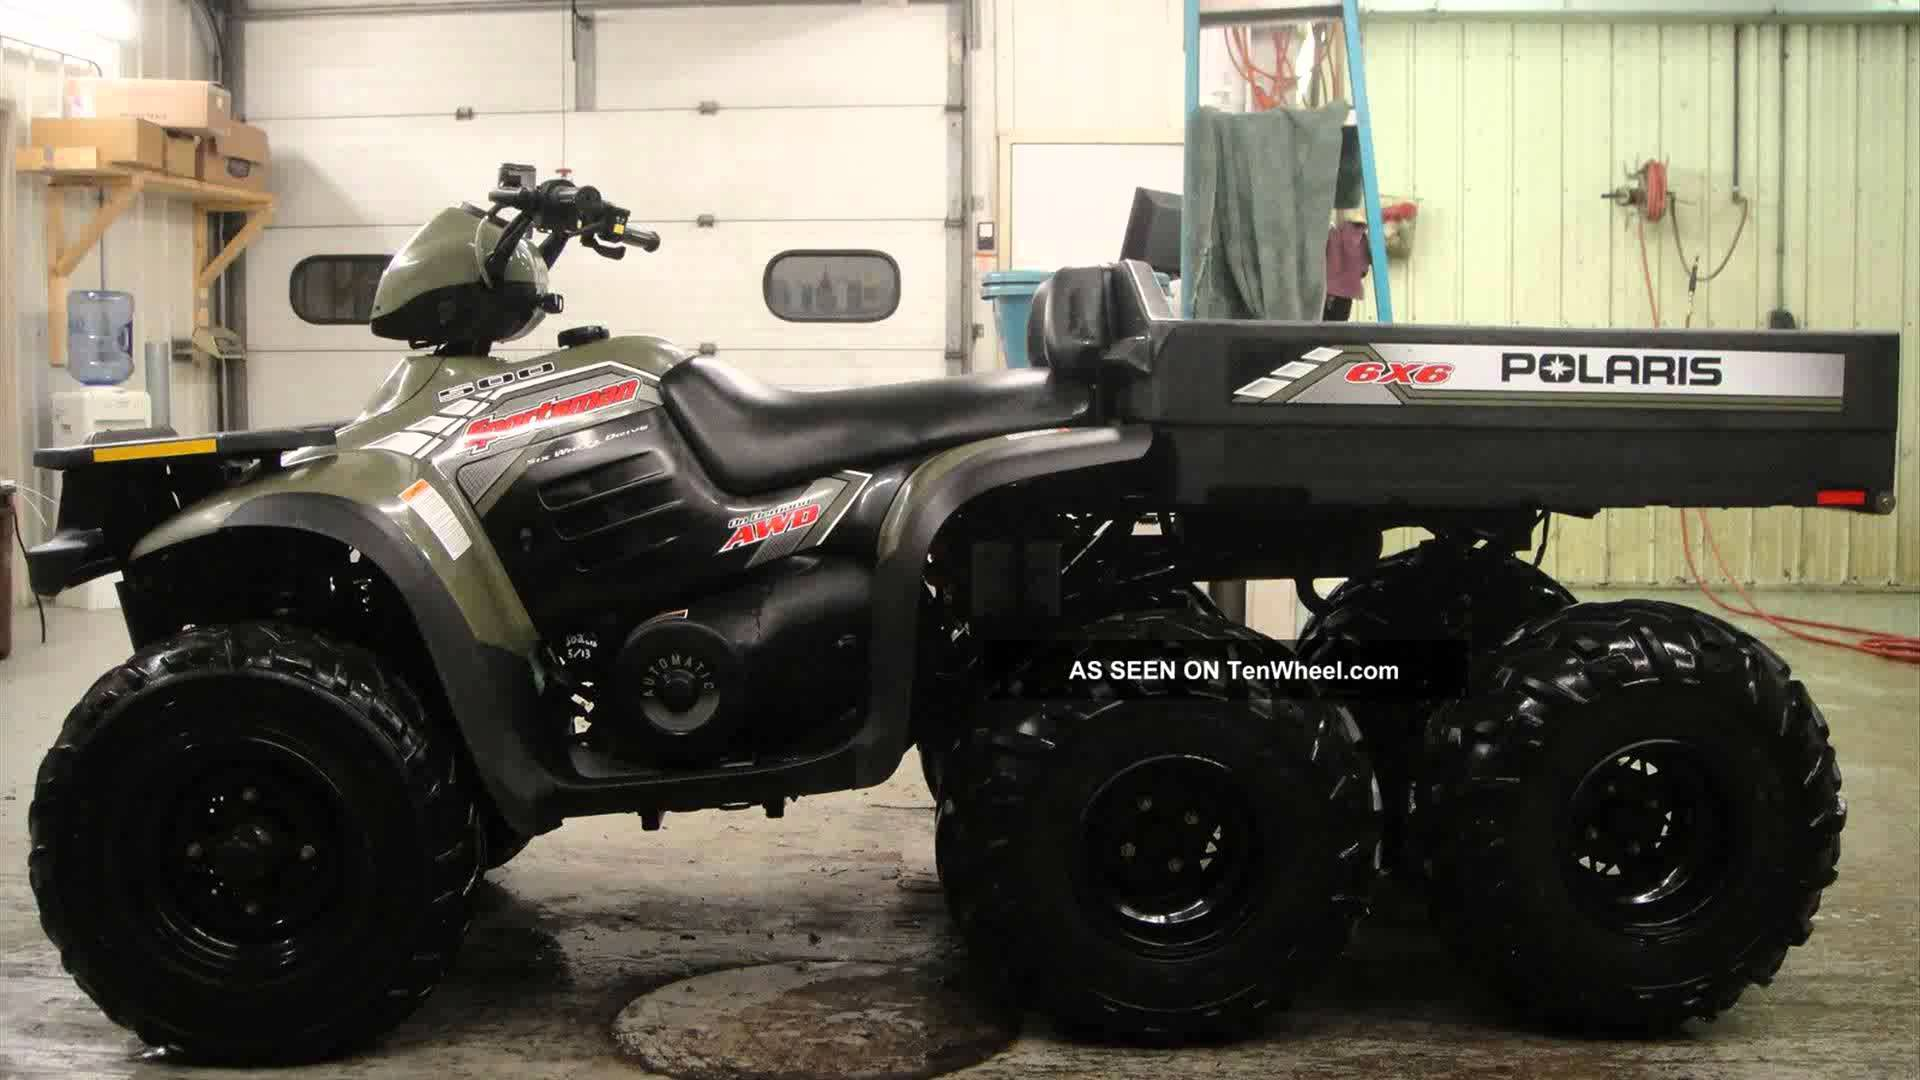 2002 Polaris Sportsman 700 Wiring Diagram from static-resources.imageservice.cloud